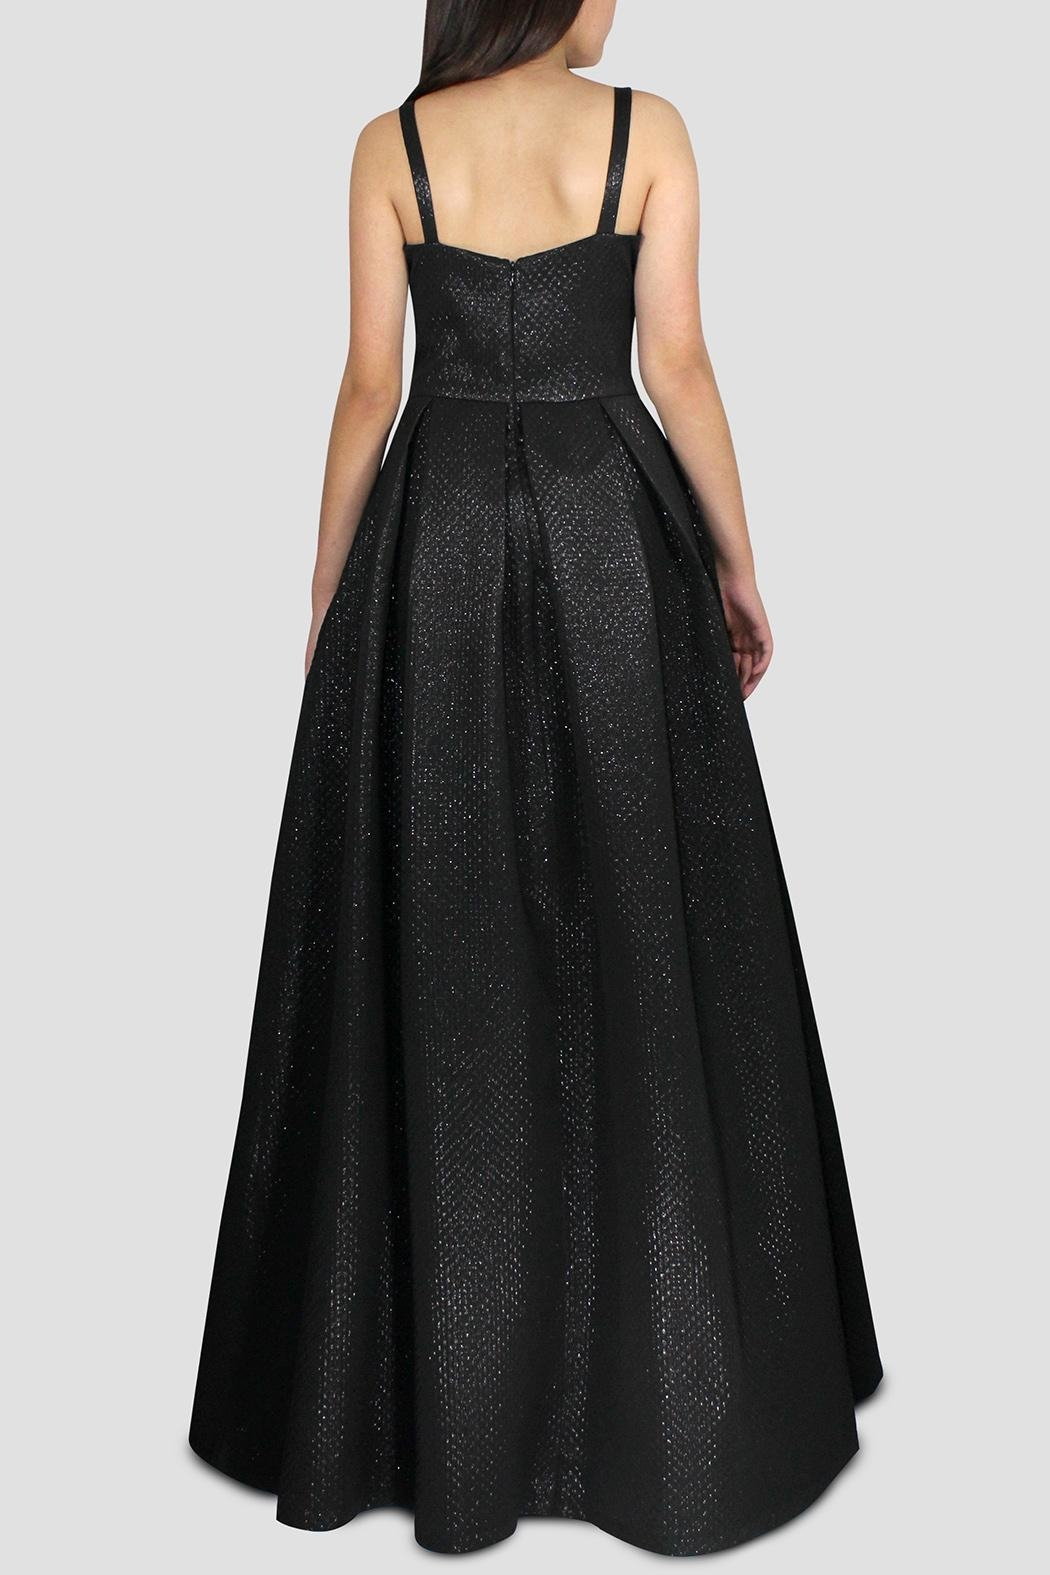 SoZu V-Neck Bell Gown - Side Cropped Image